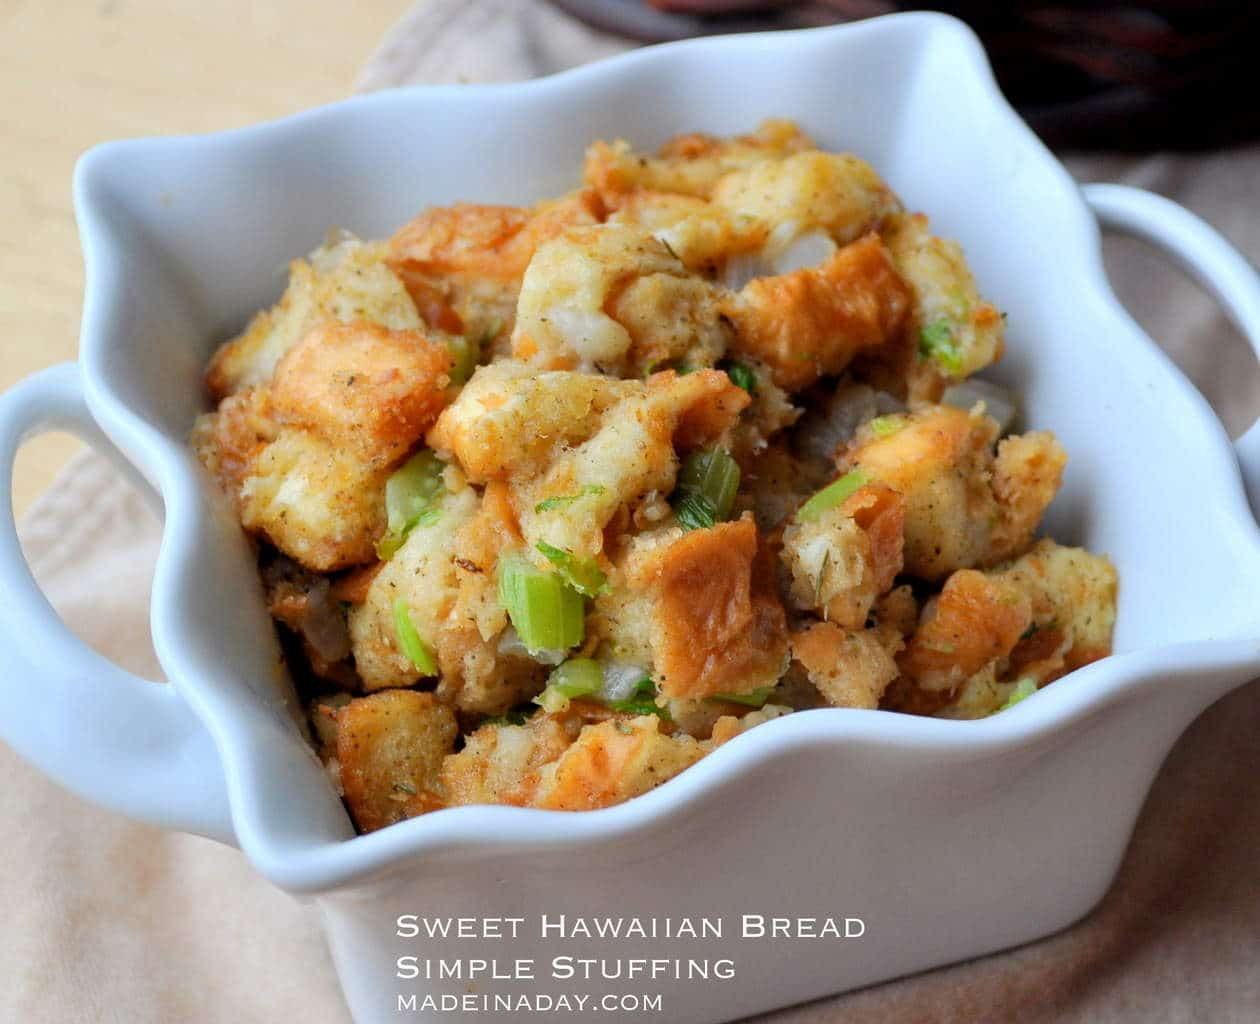 Easy Kings Hawaiian Bread Stuffing madeinaday.com